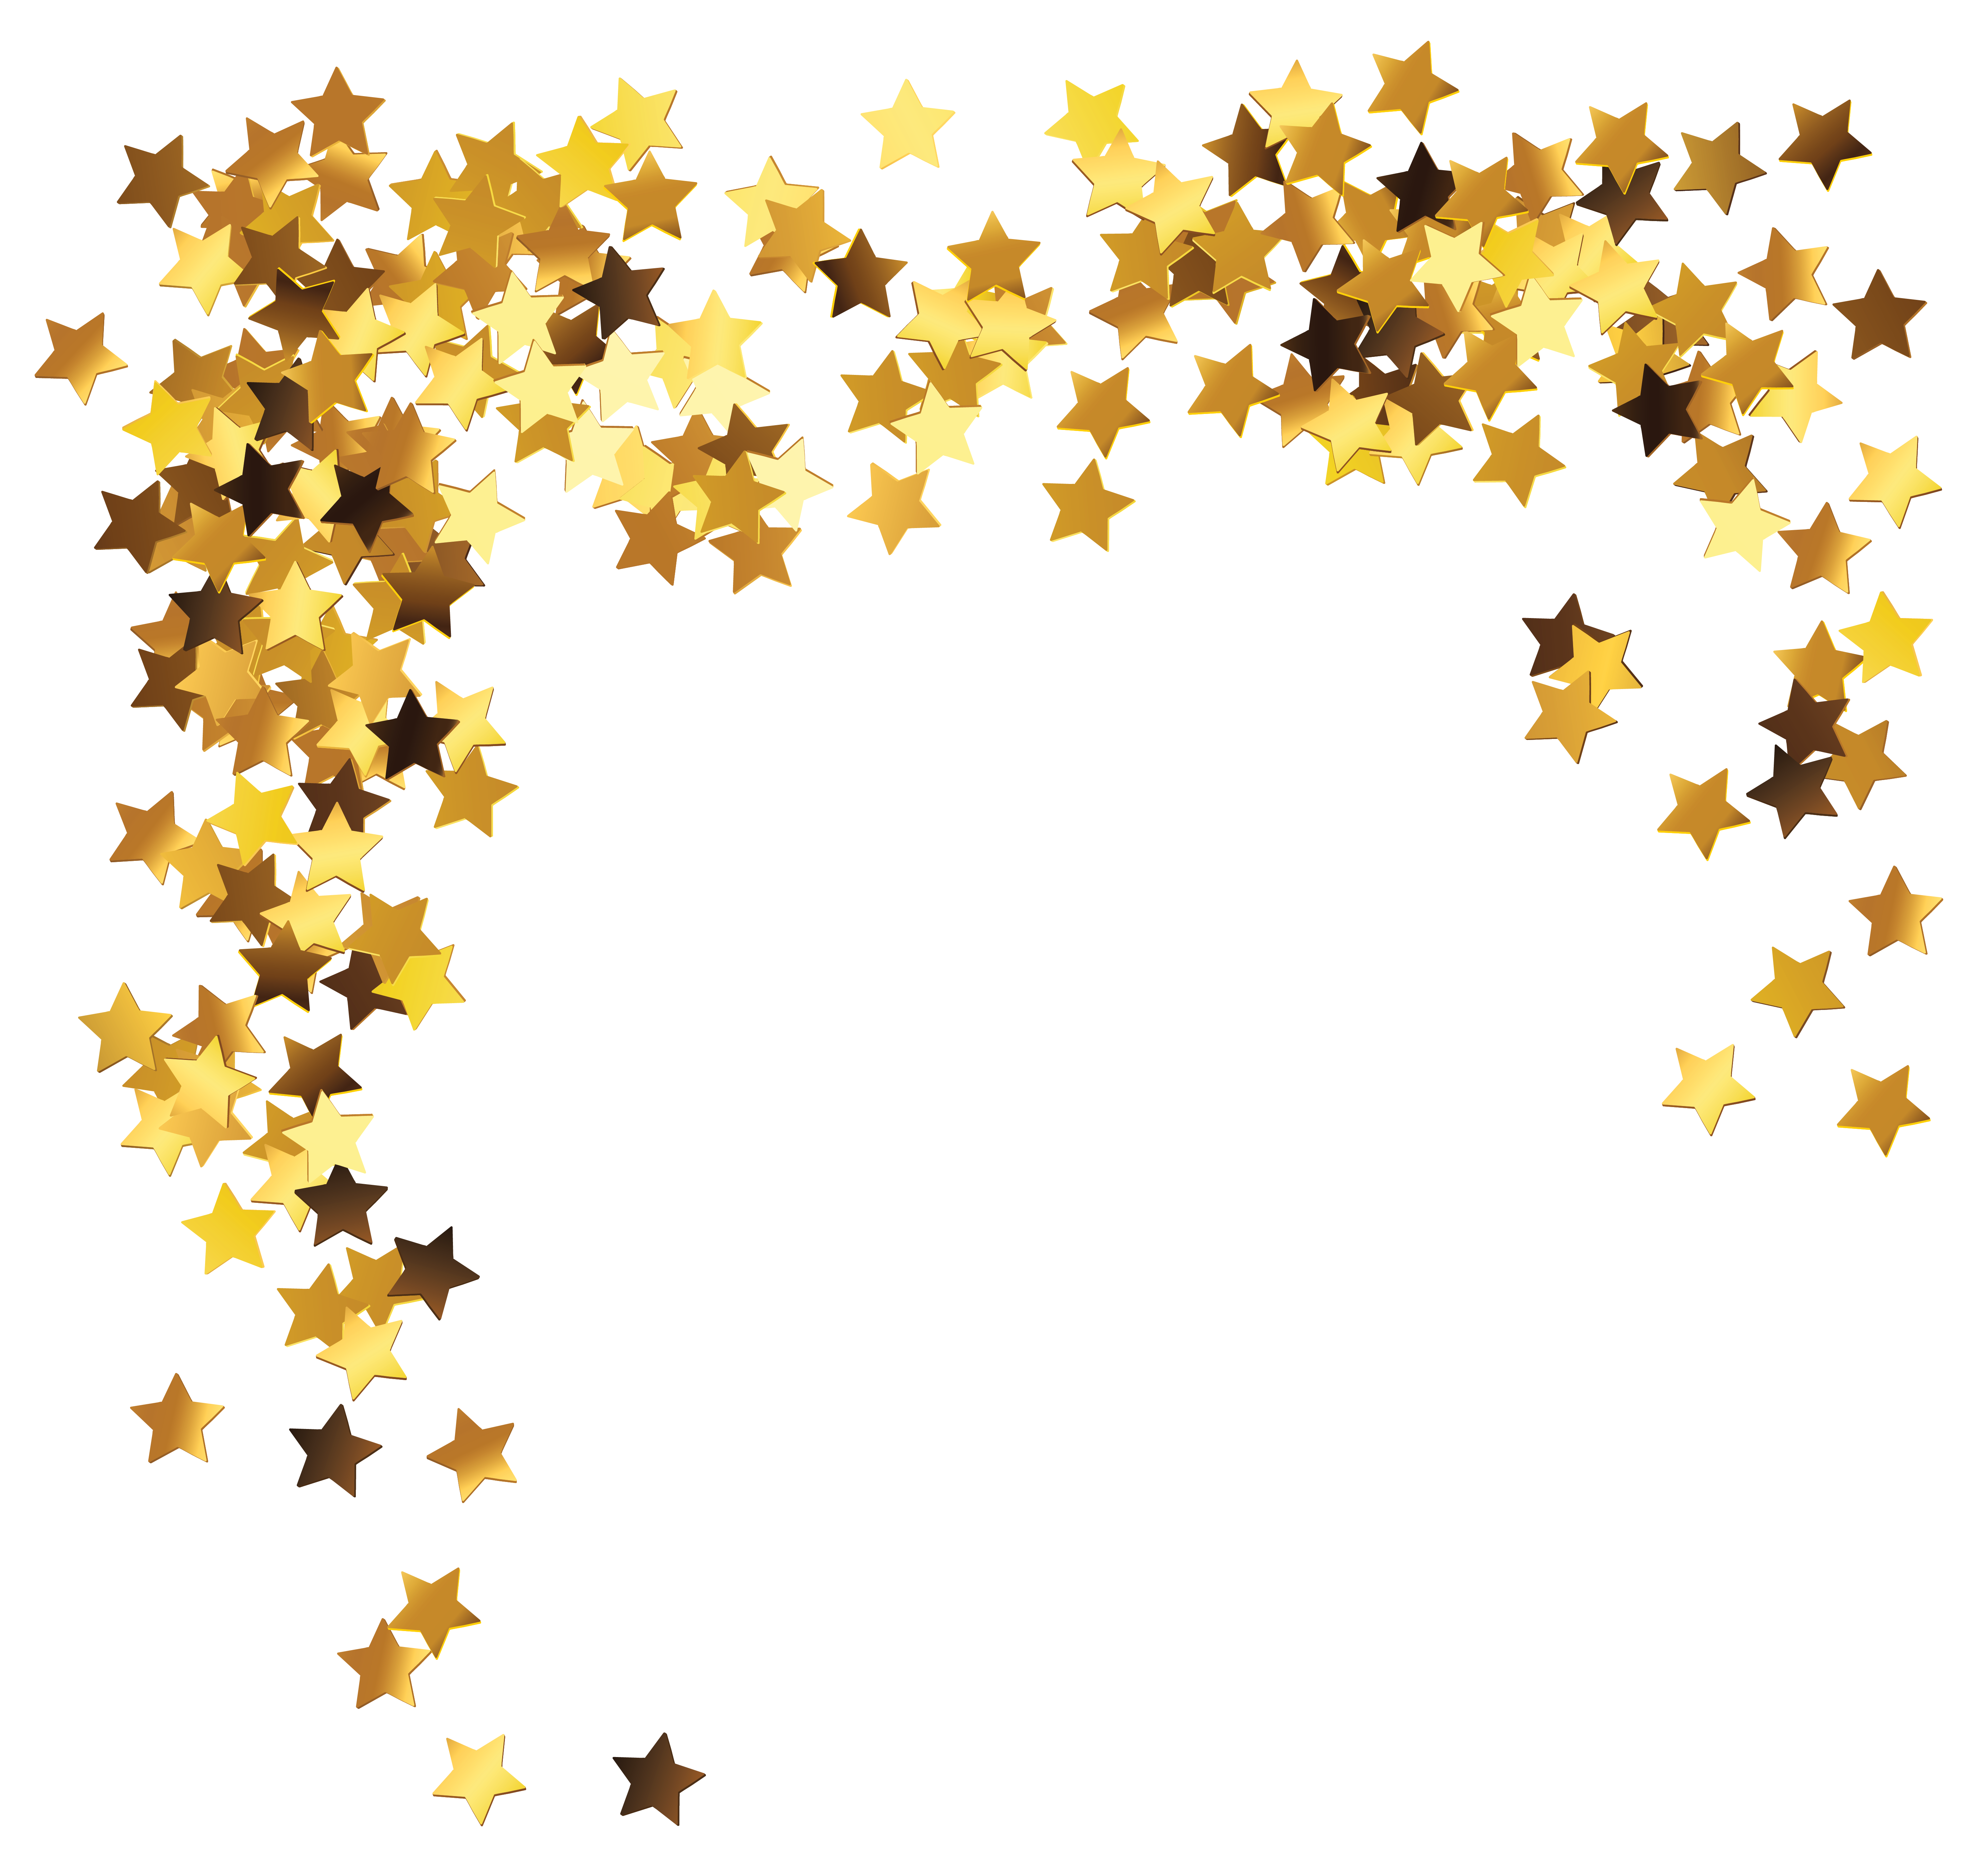 Start clipart decoration. Gold stars png picture